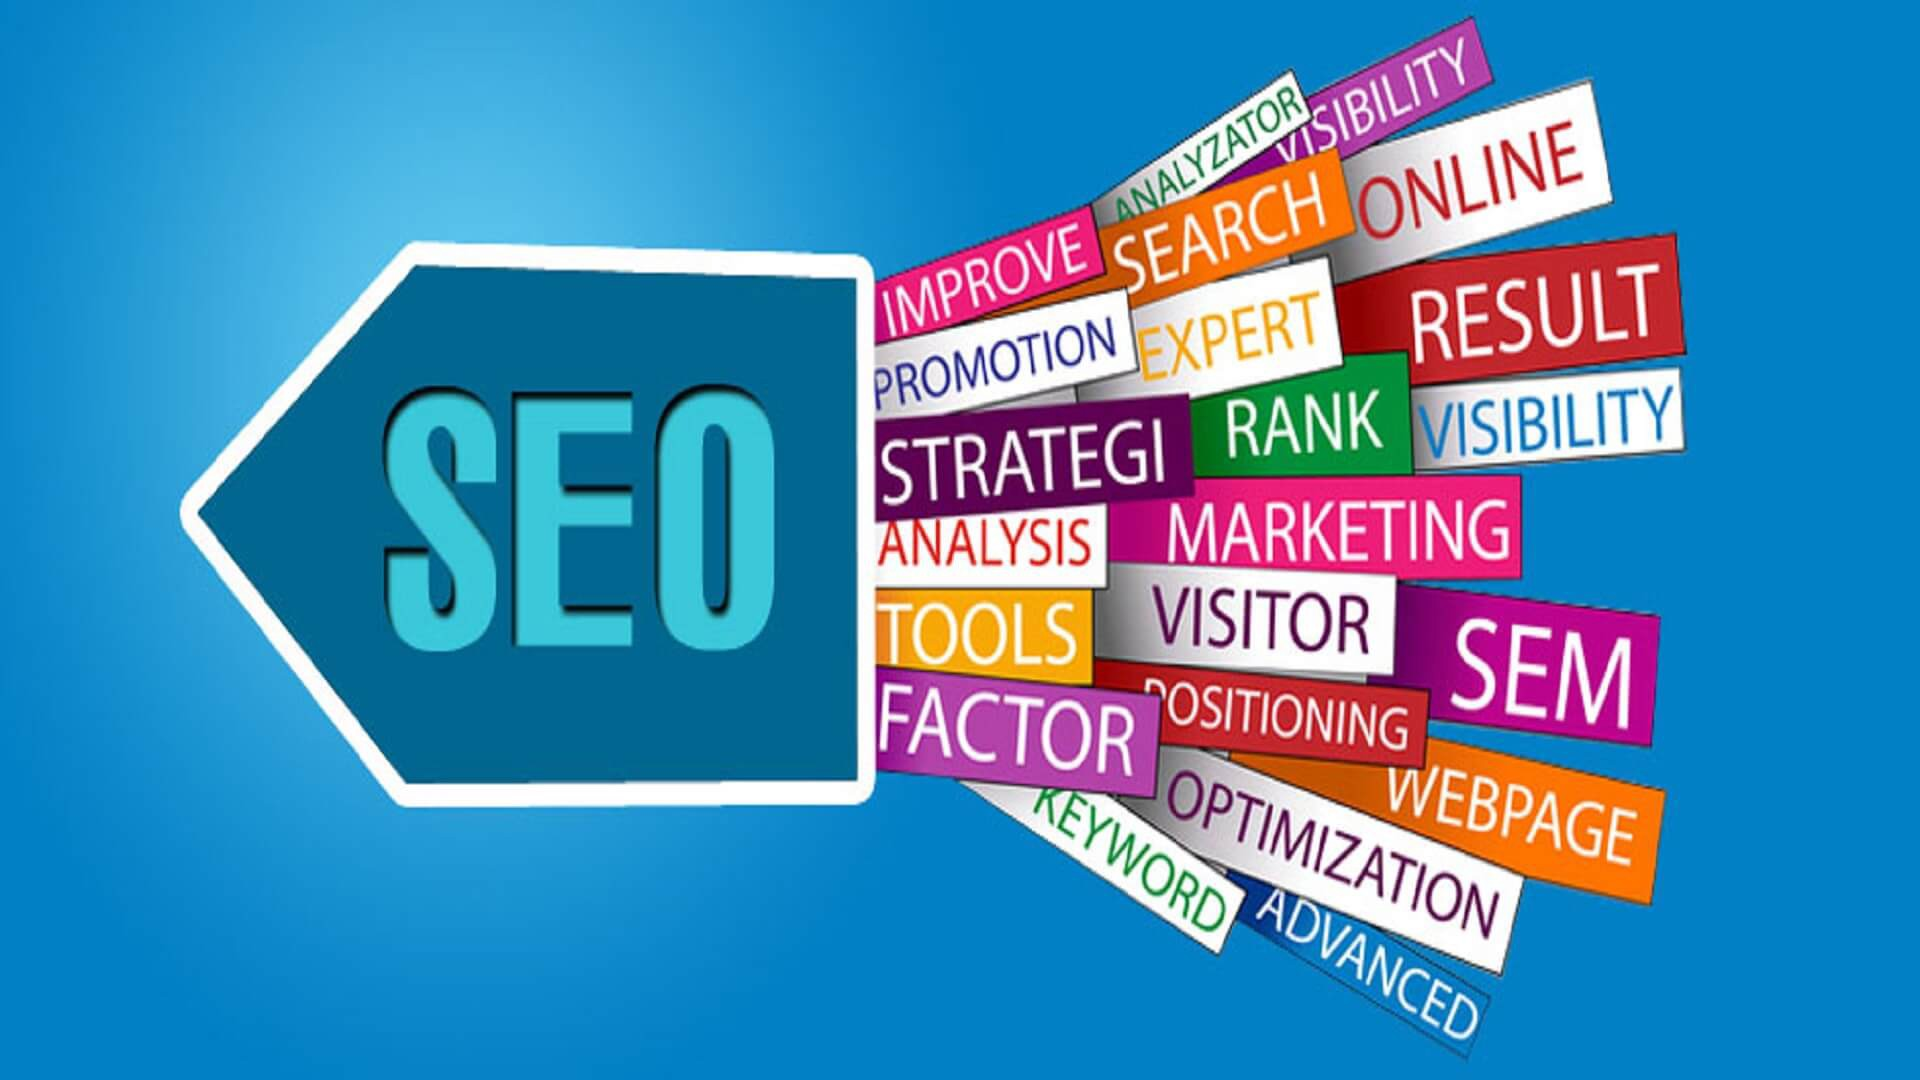 SEO is a Technical Skill with Good Earning Potential - The Importance of SEO for An Enterprise Website